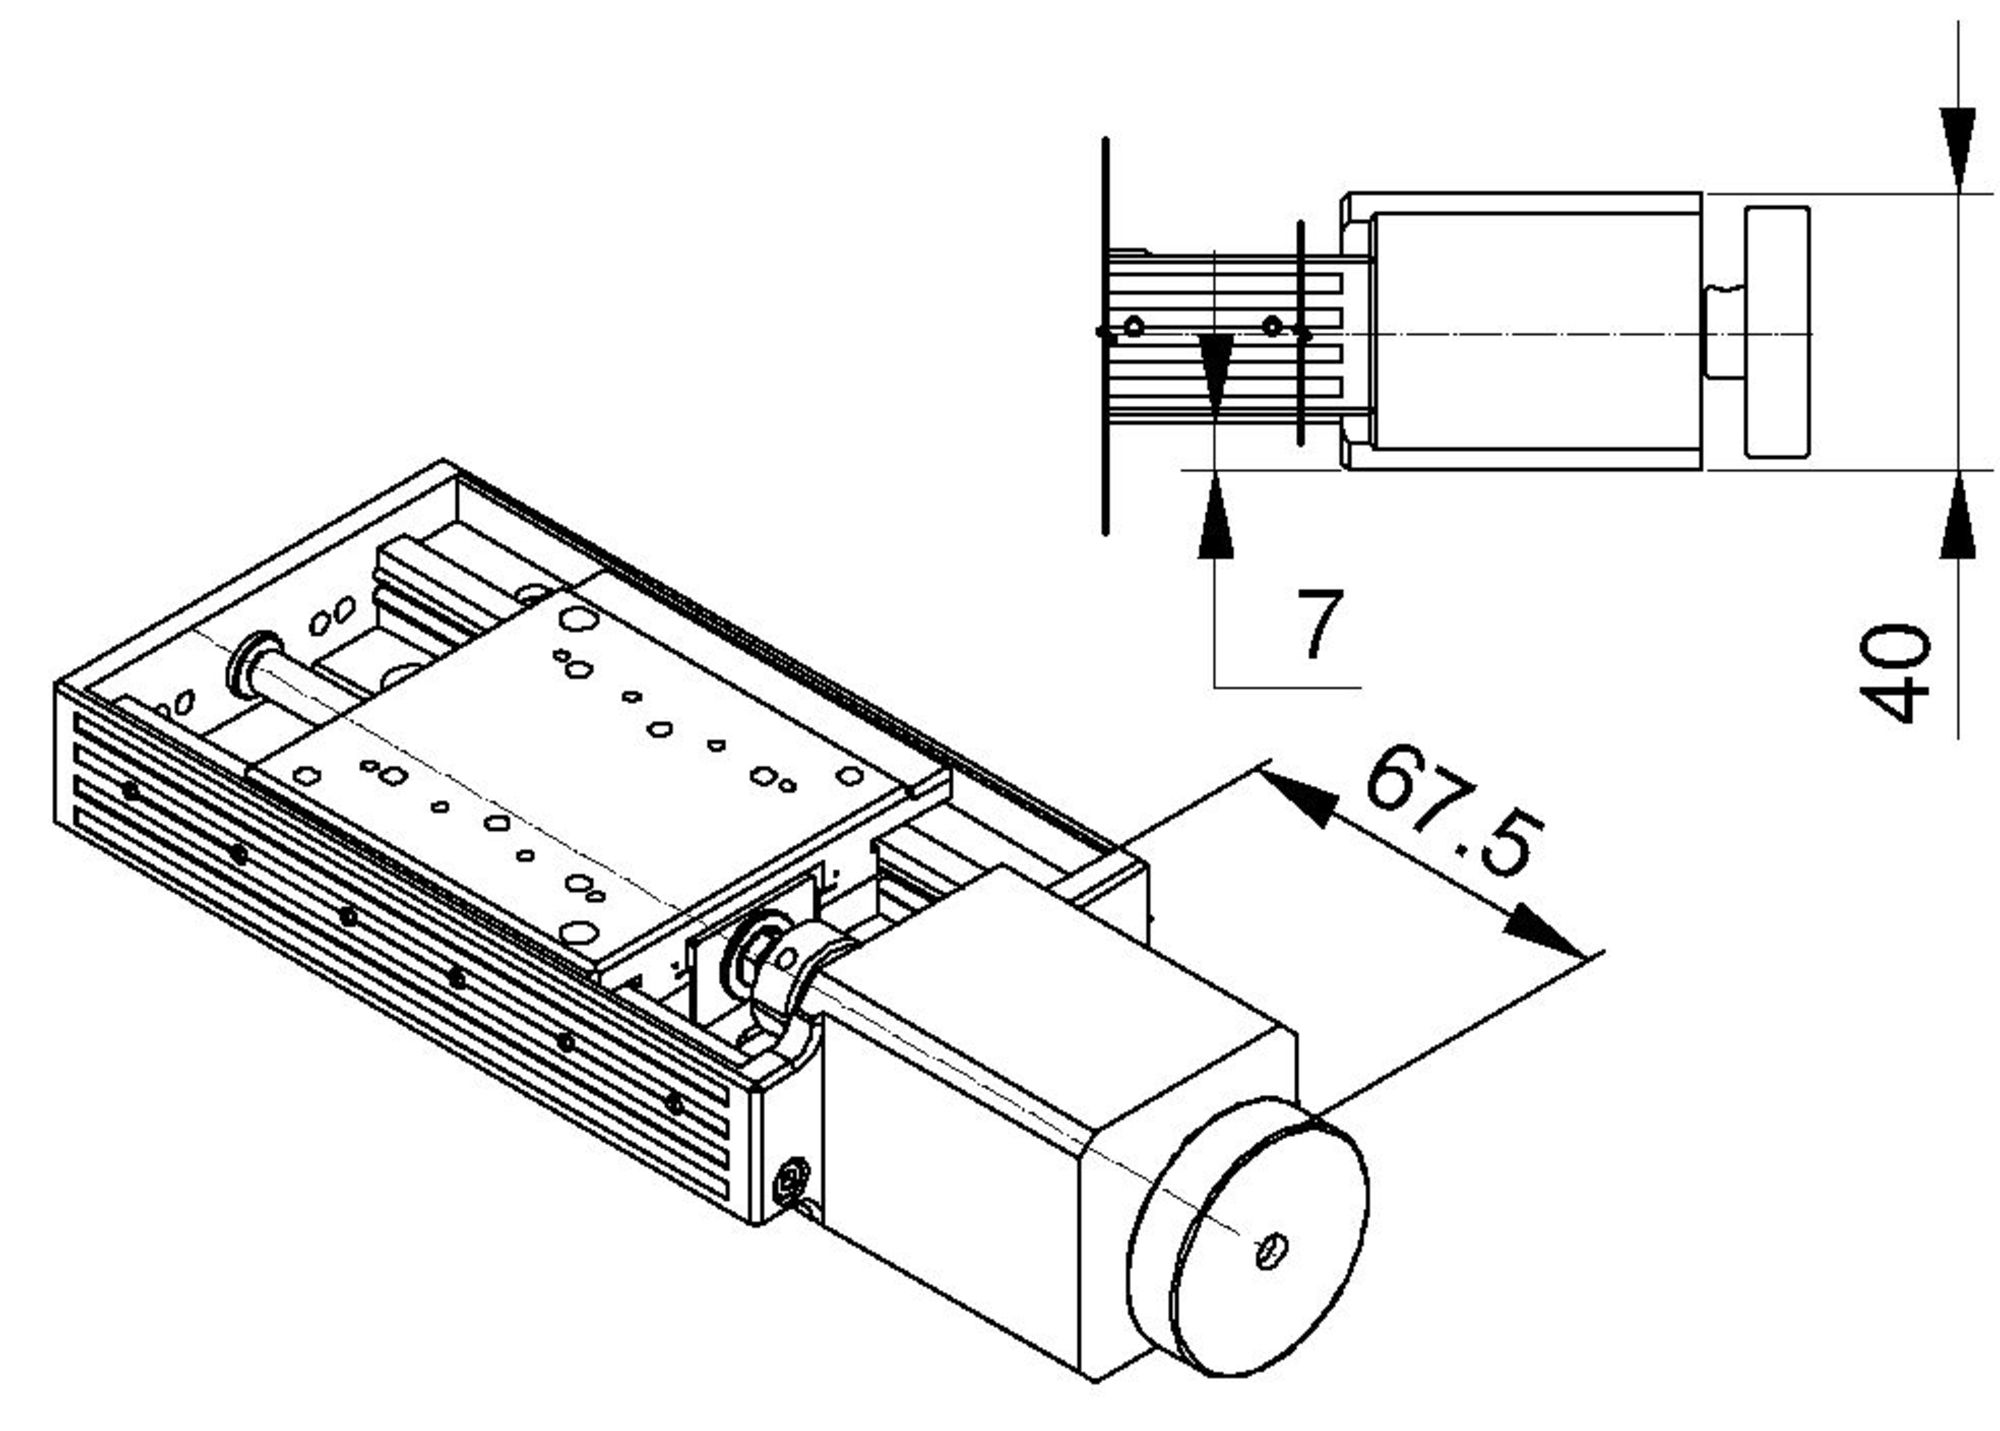 Dc Motor Drawing At Free For Personal Use Universal Speed Control Circuit 2000x1431 Vt 80 Linear Stage